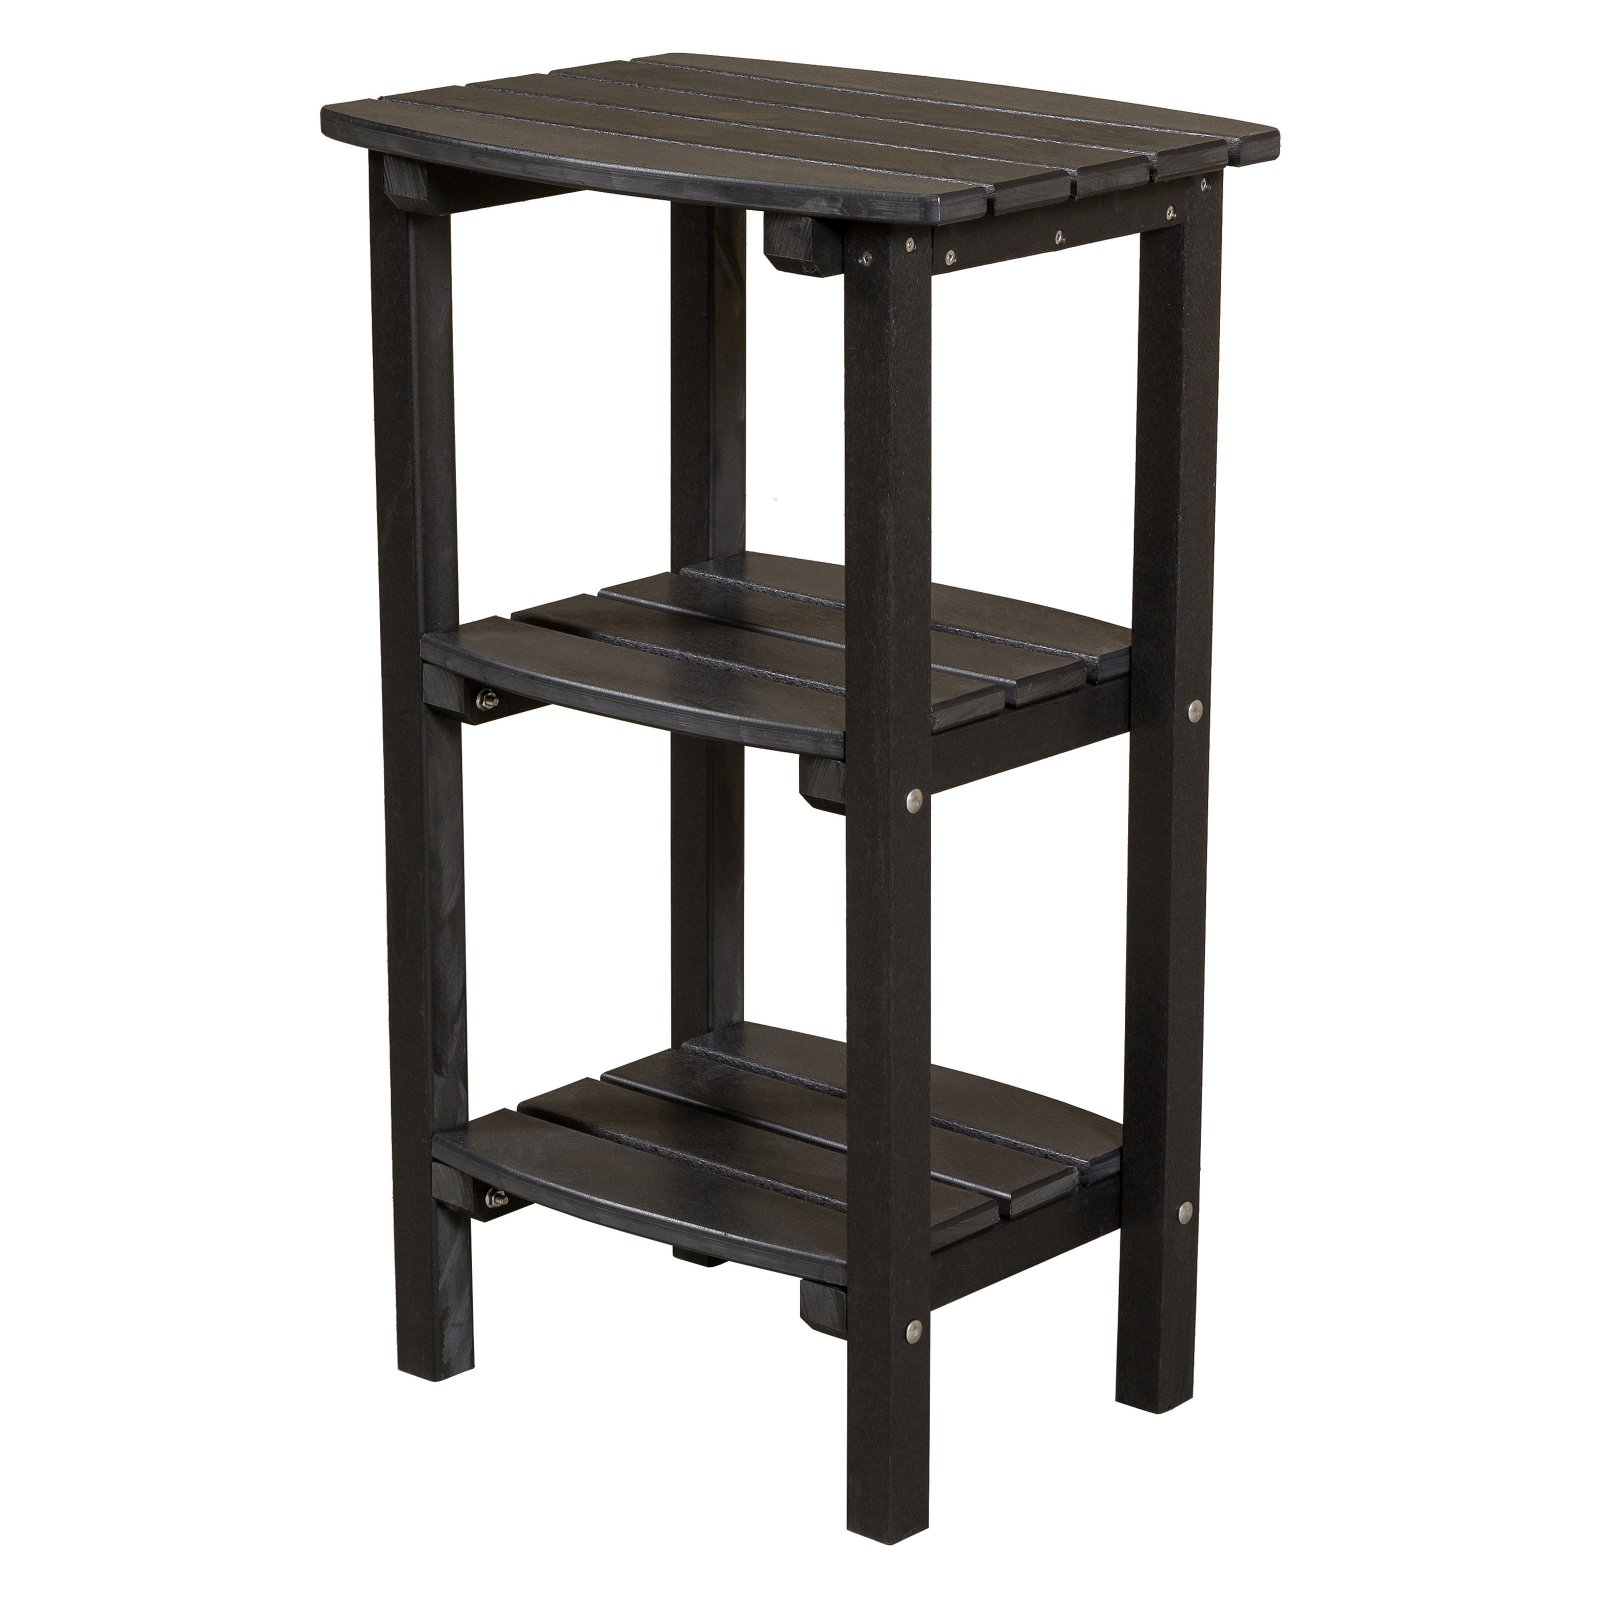 WILDRIDGE Classic Adirondack Side Table with Shelves